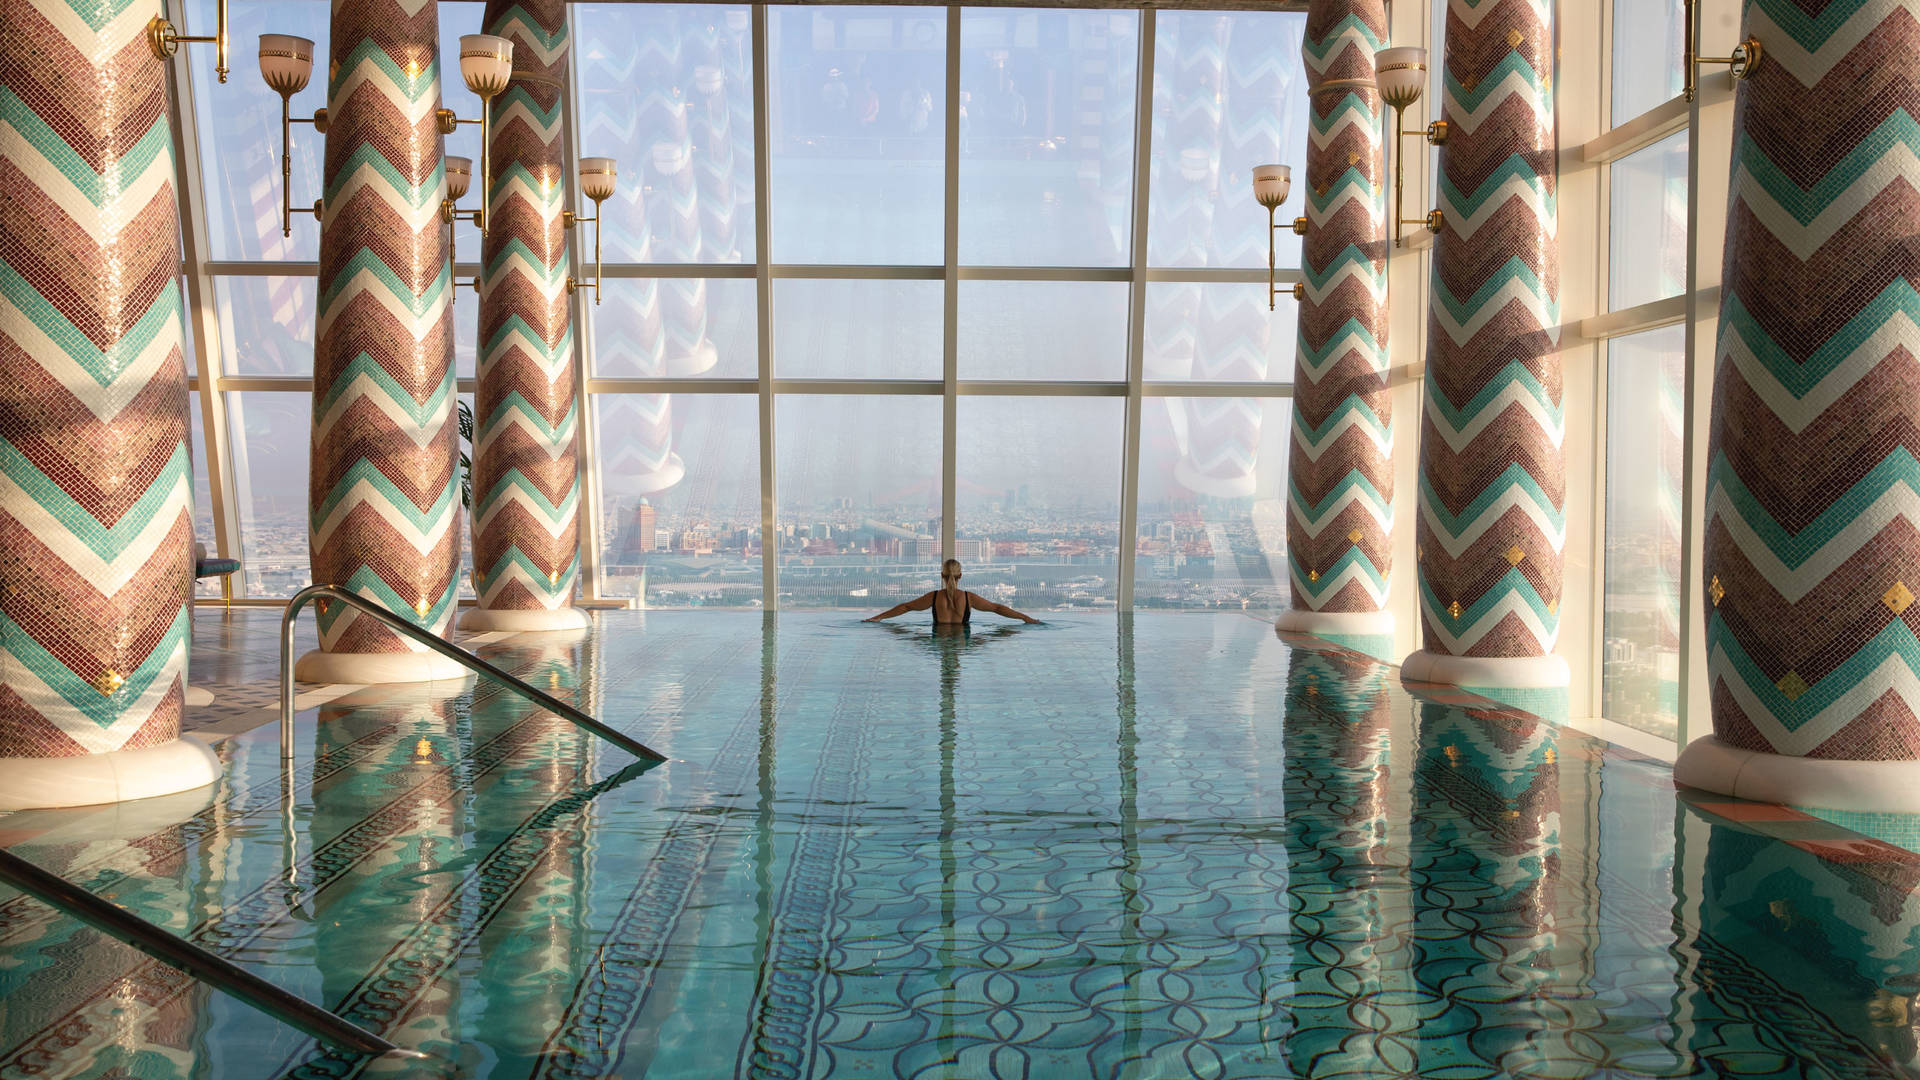 https://cdn.jumeirah.com/-/mediadh/DH/Hospitality/Jumeirah/Offers/offer-images/burj-al-arab-talise-spa-female-pool4-hero.jpg?h=1080&w=1920&hash=5100F1AF52DDB5FD53AD2BA9D2AA49C7